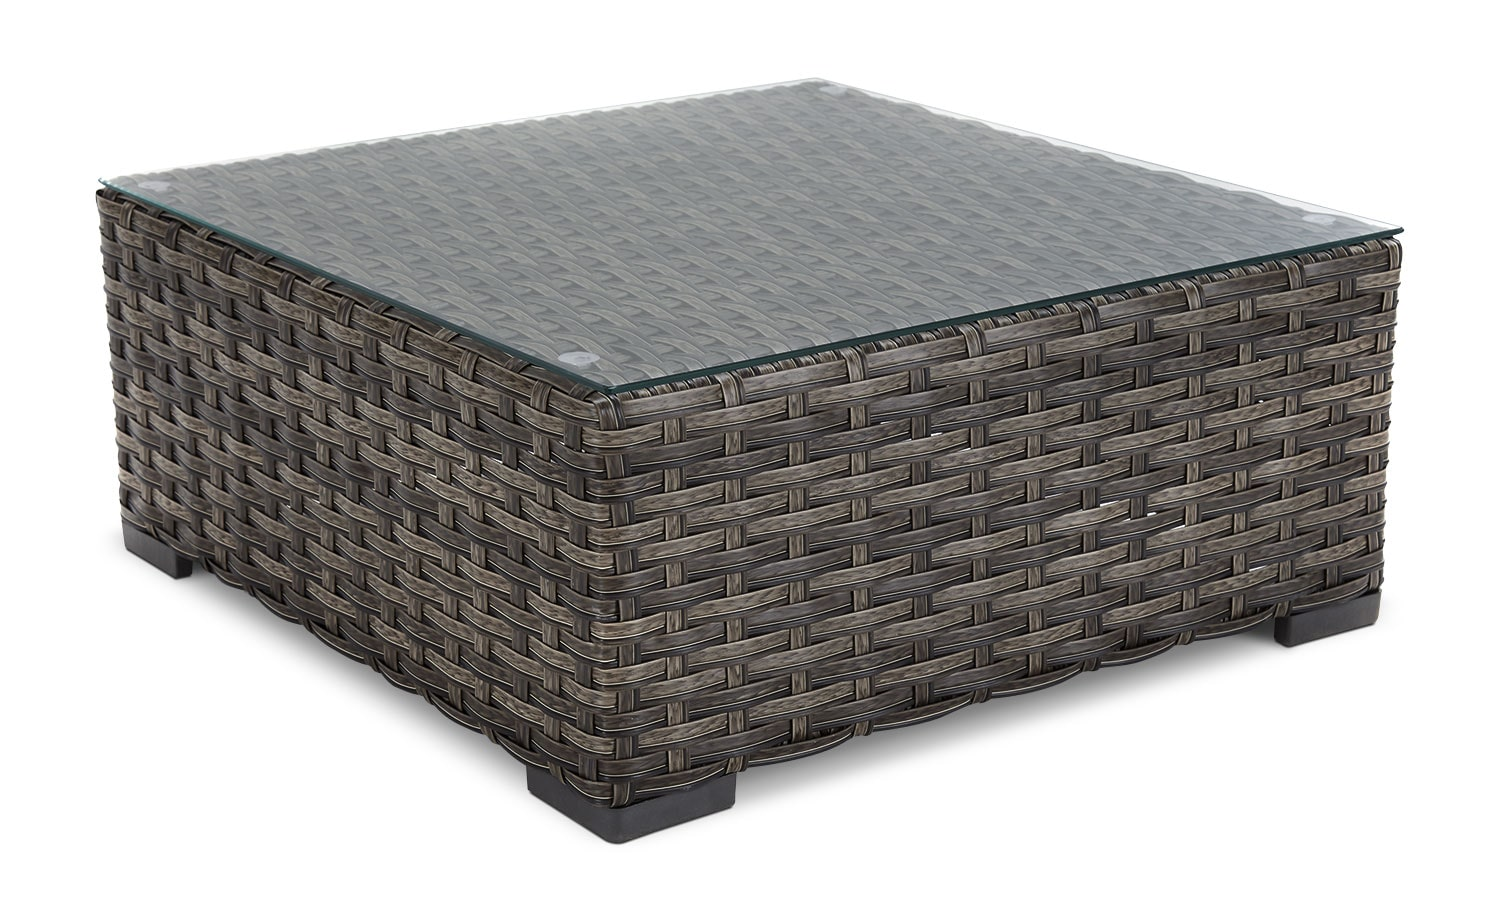 Outdoor Furniture - Newby Patio Coffee Table - Beige